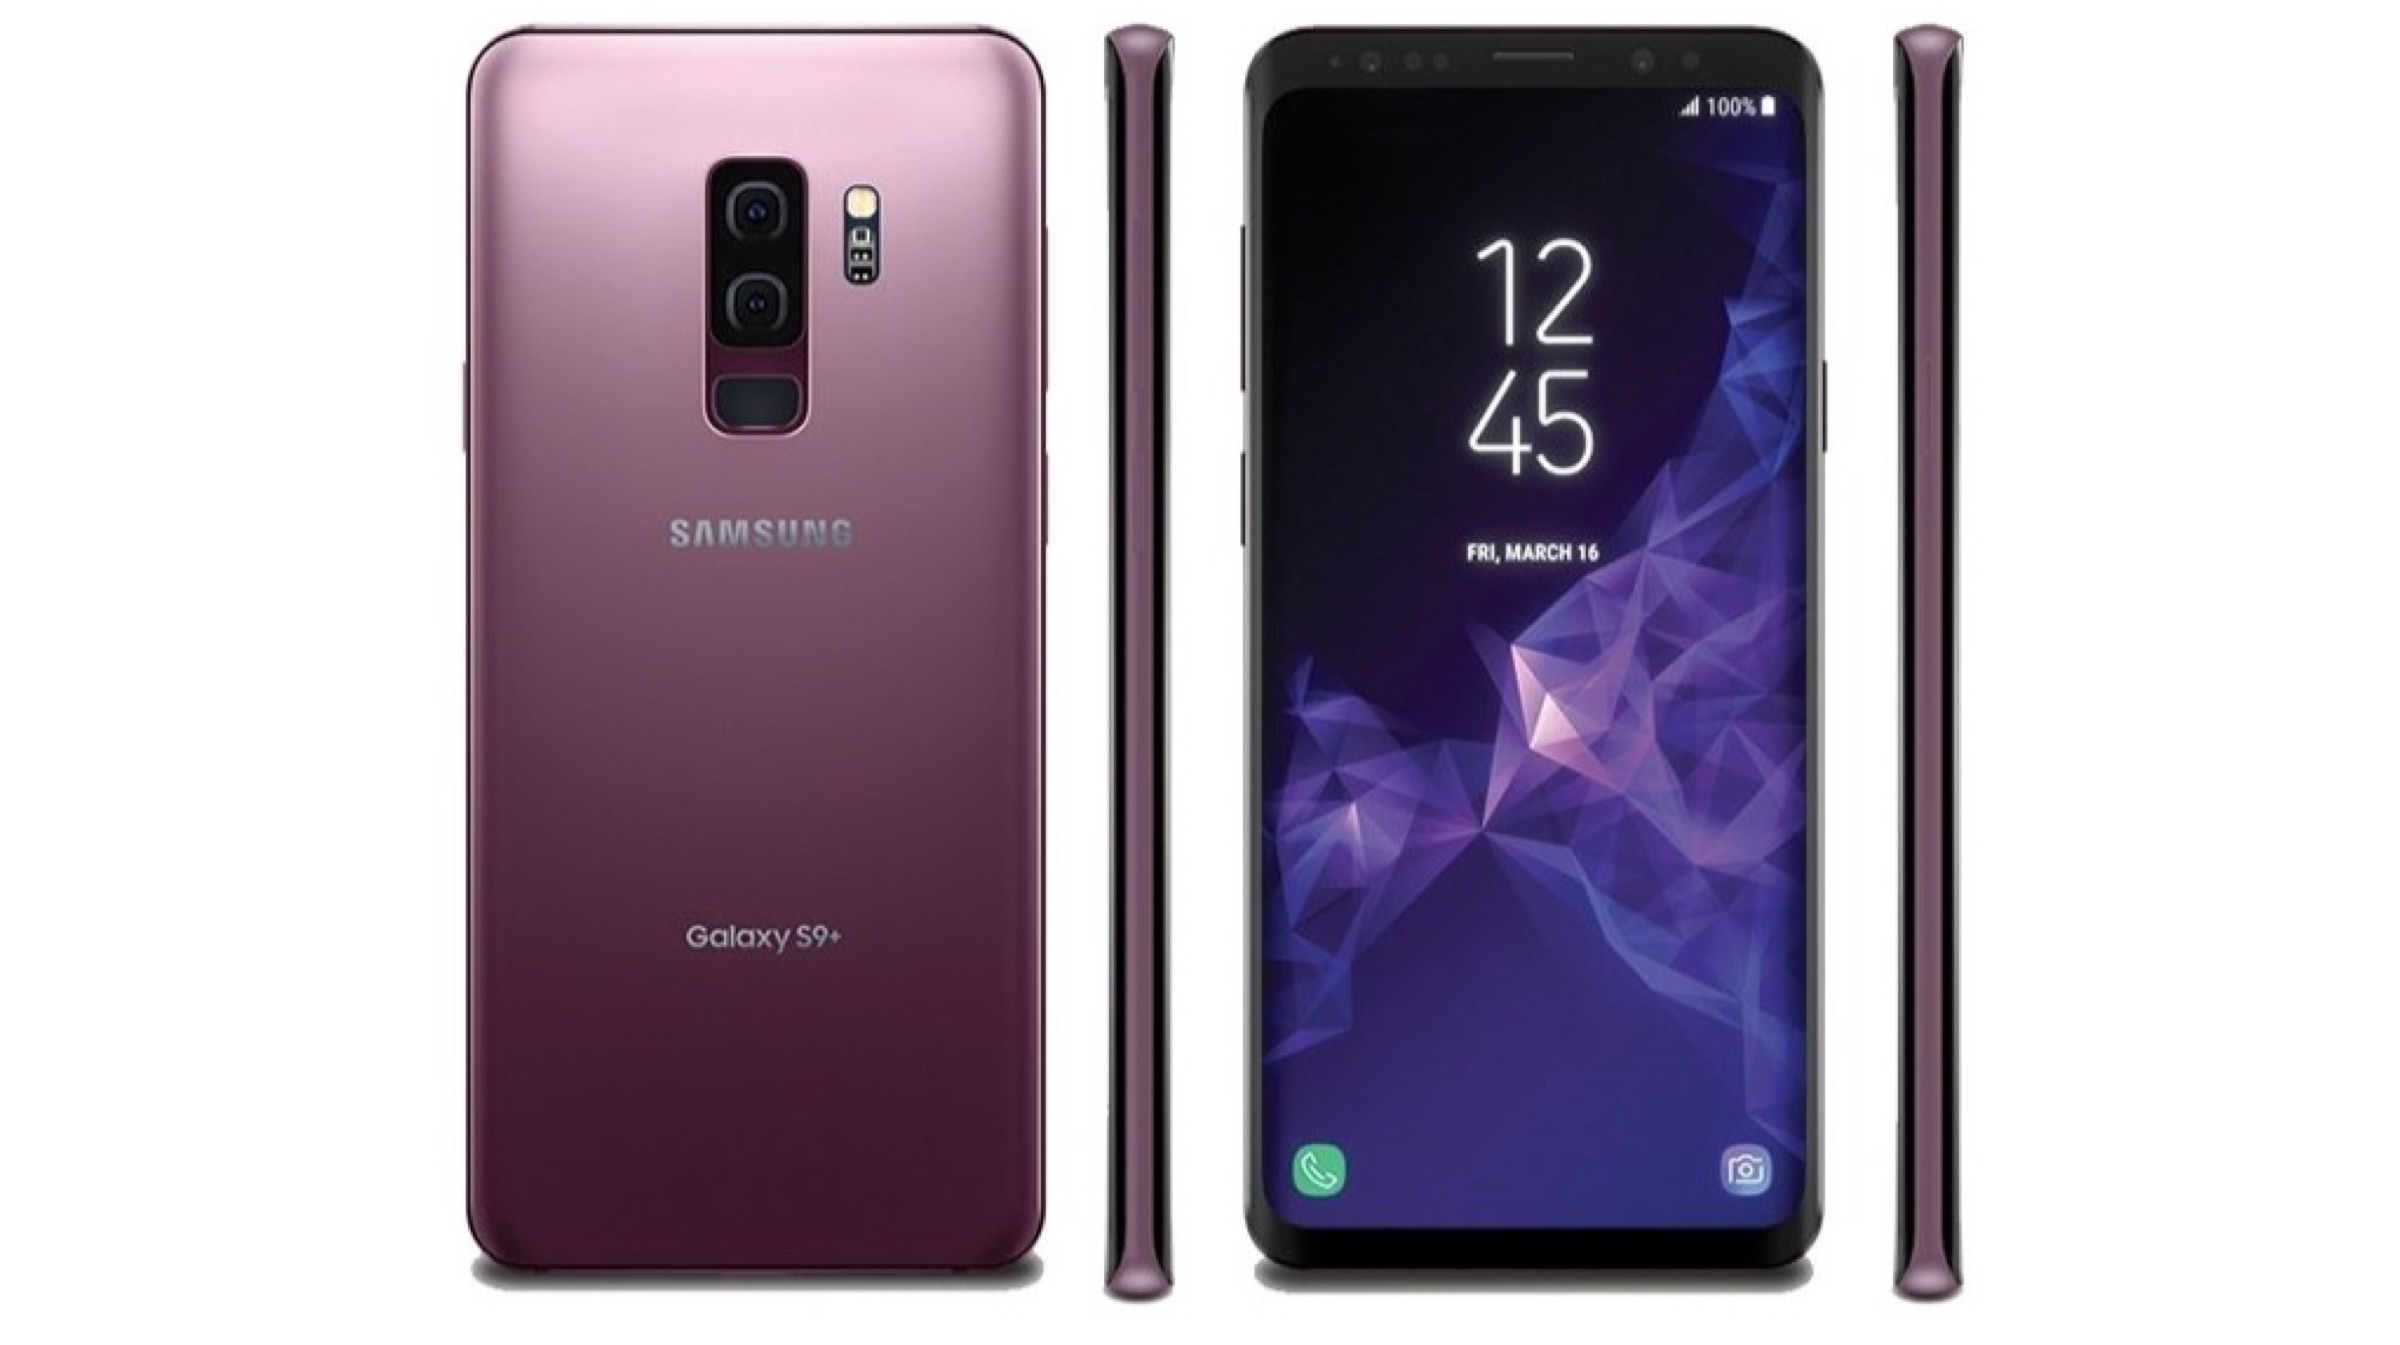 Samsung Galaxy S9, Galaxy S9+ Leaked In Lilac Purple Colour | iGyaan